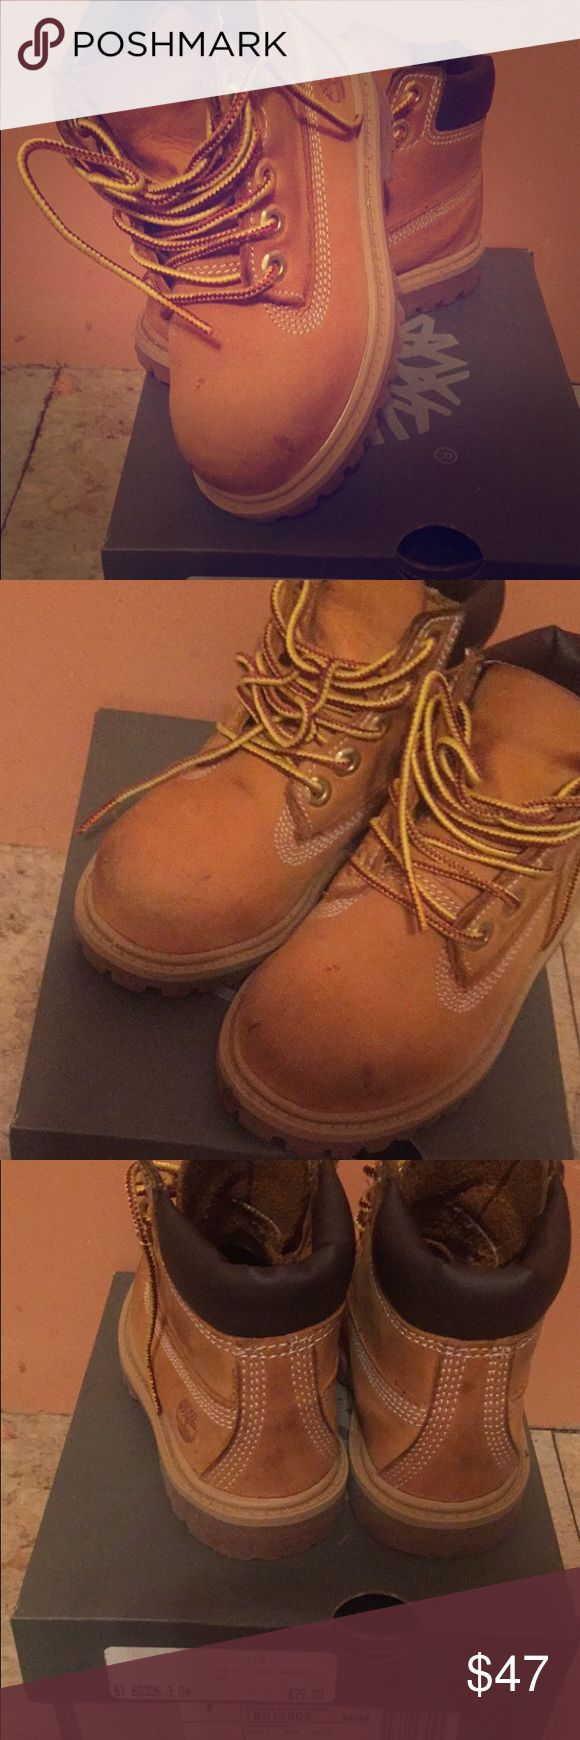 Worn but good condition toddler timberland boots Good condition toddler timberlands Timberland Shoes Boots